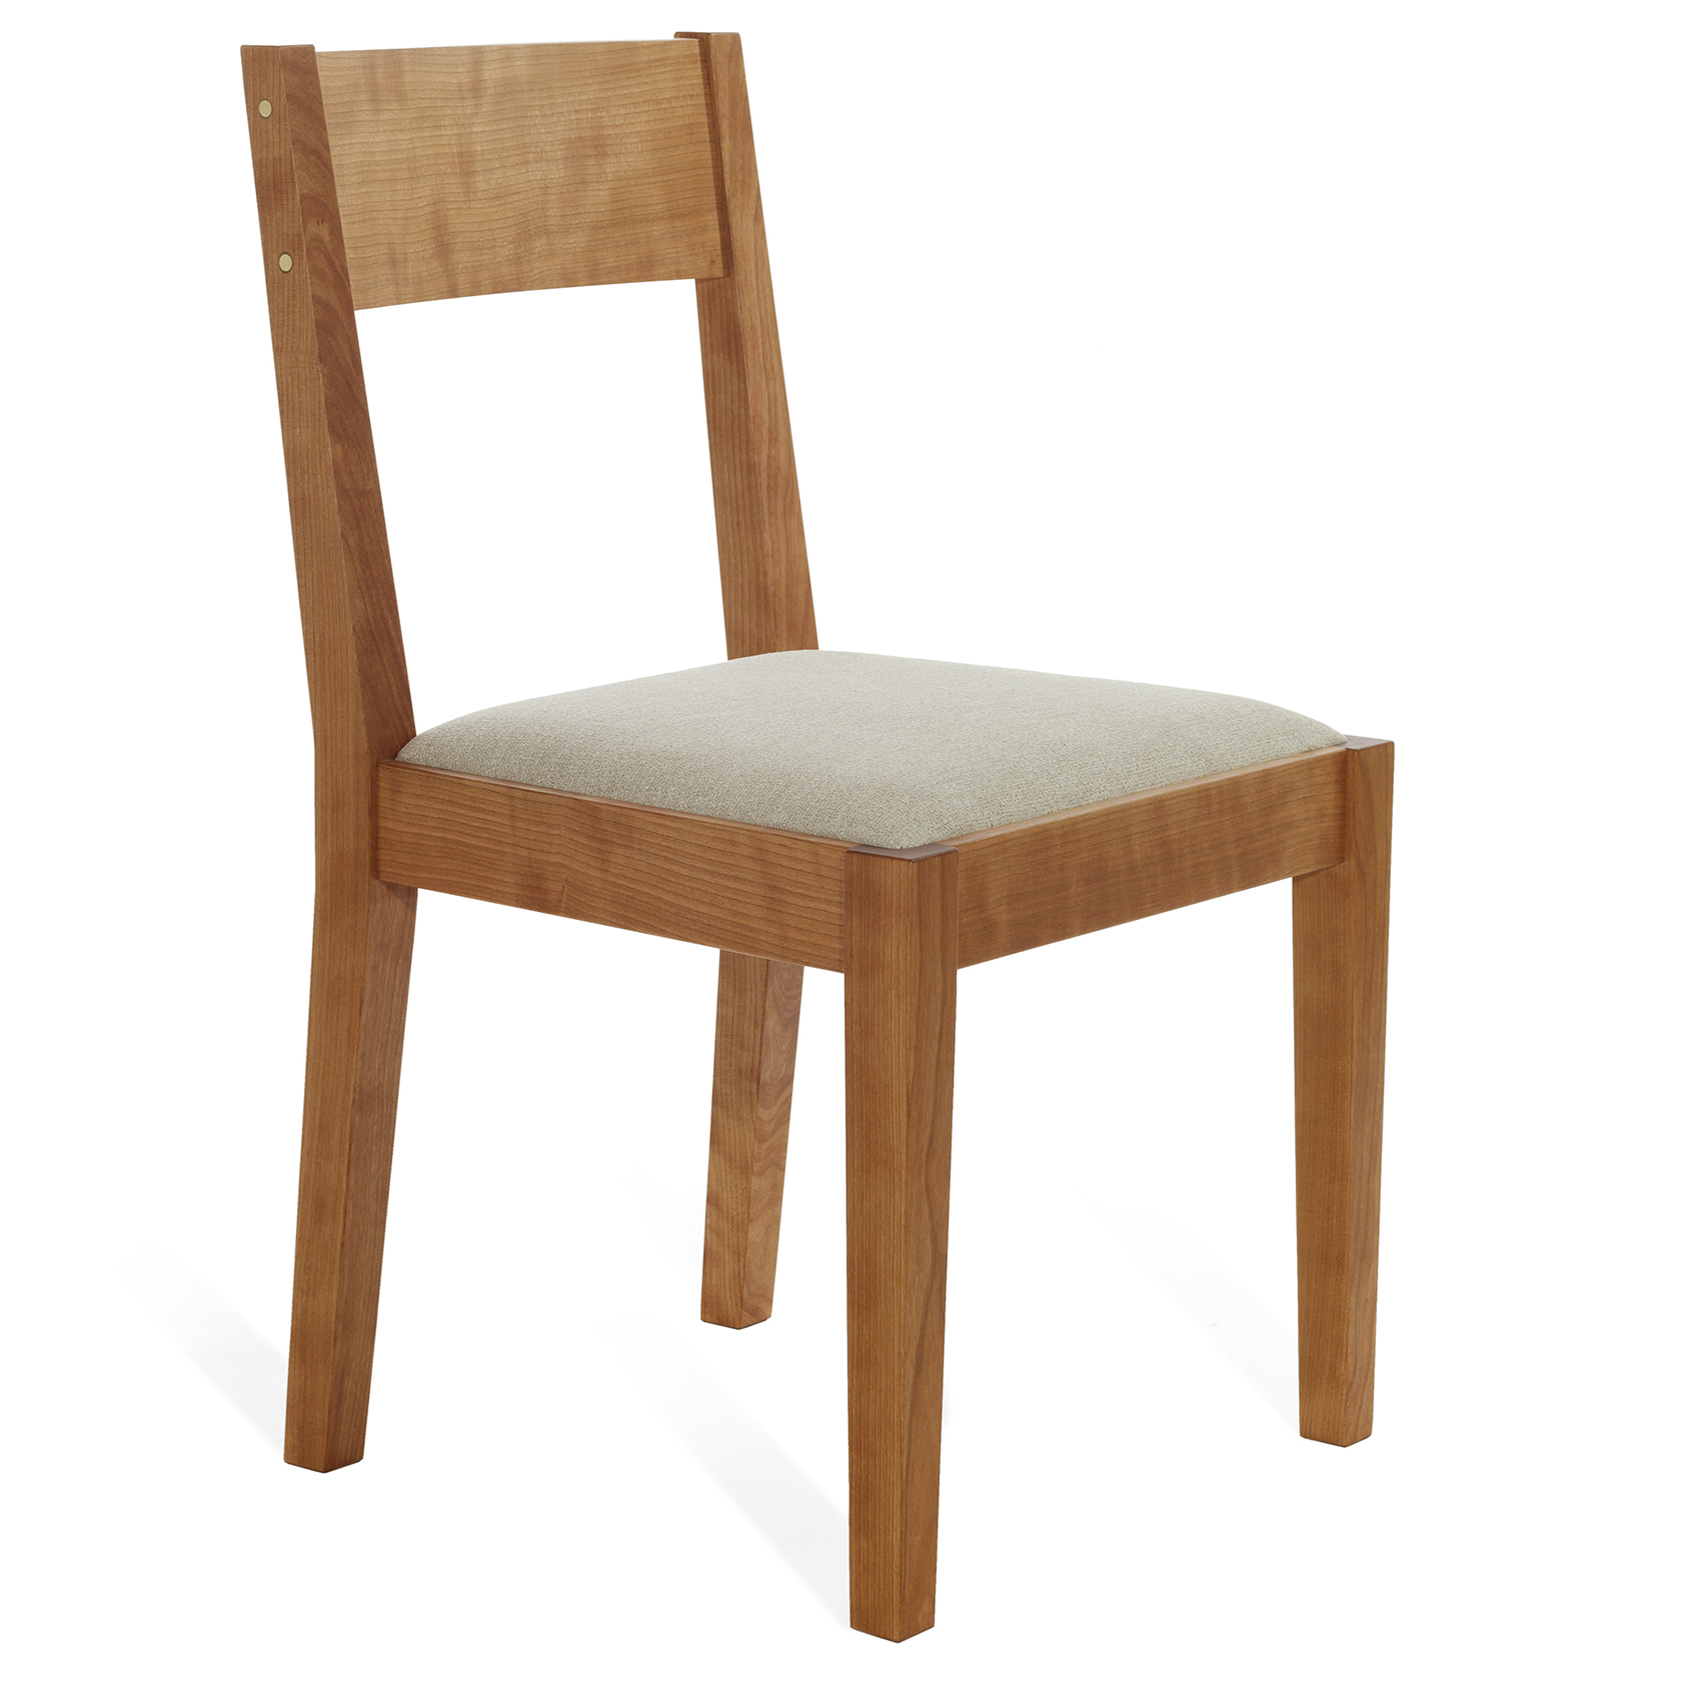 Jetmore dining chair in cherry and fabric